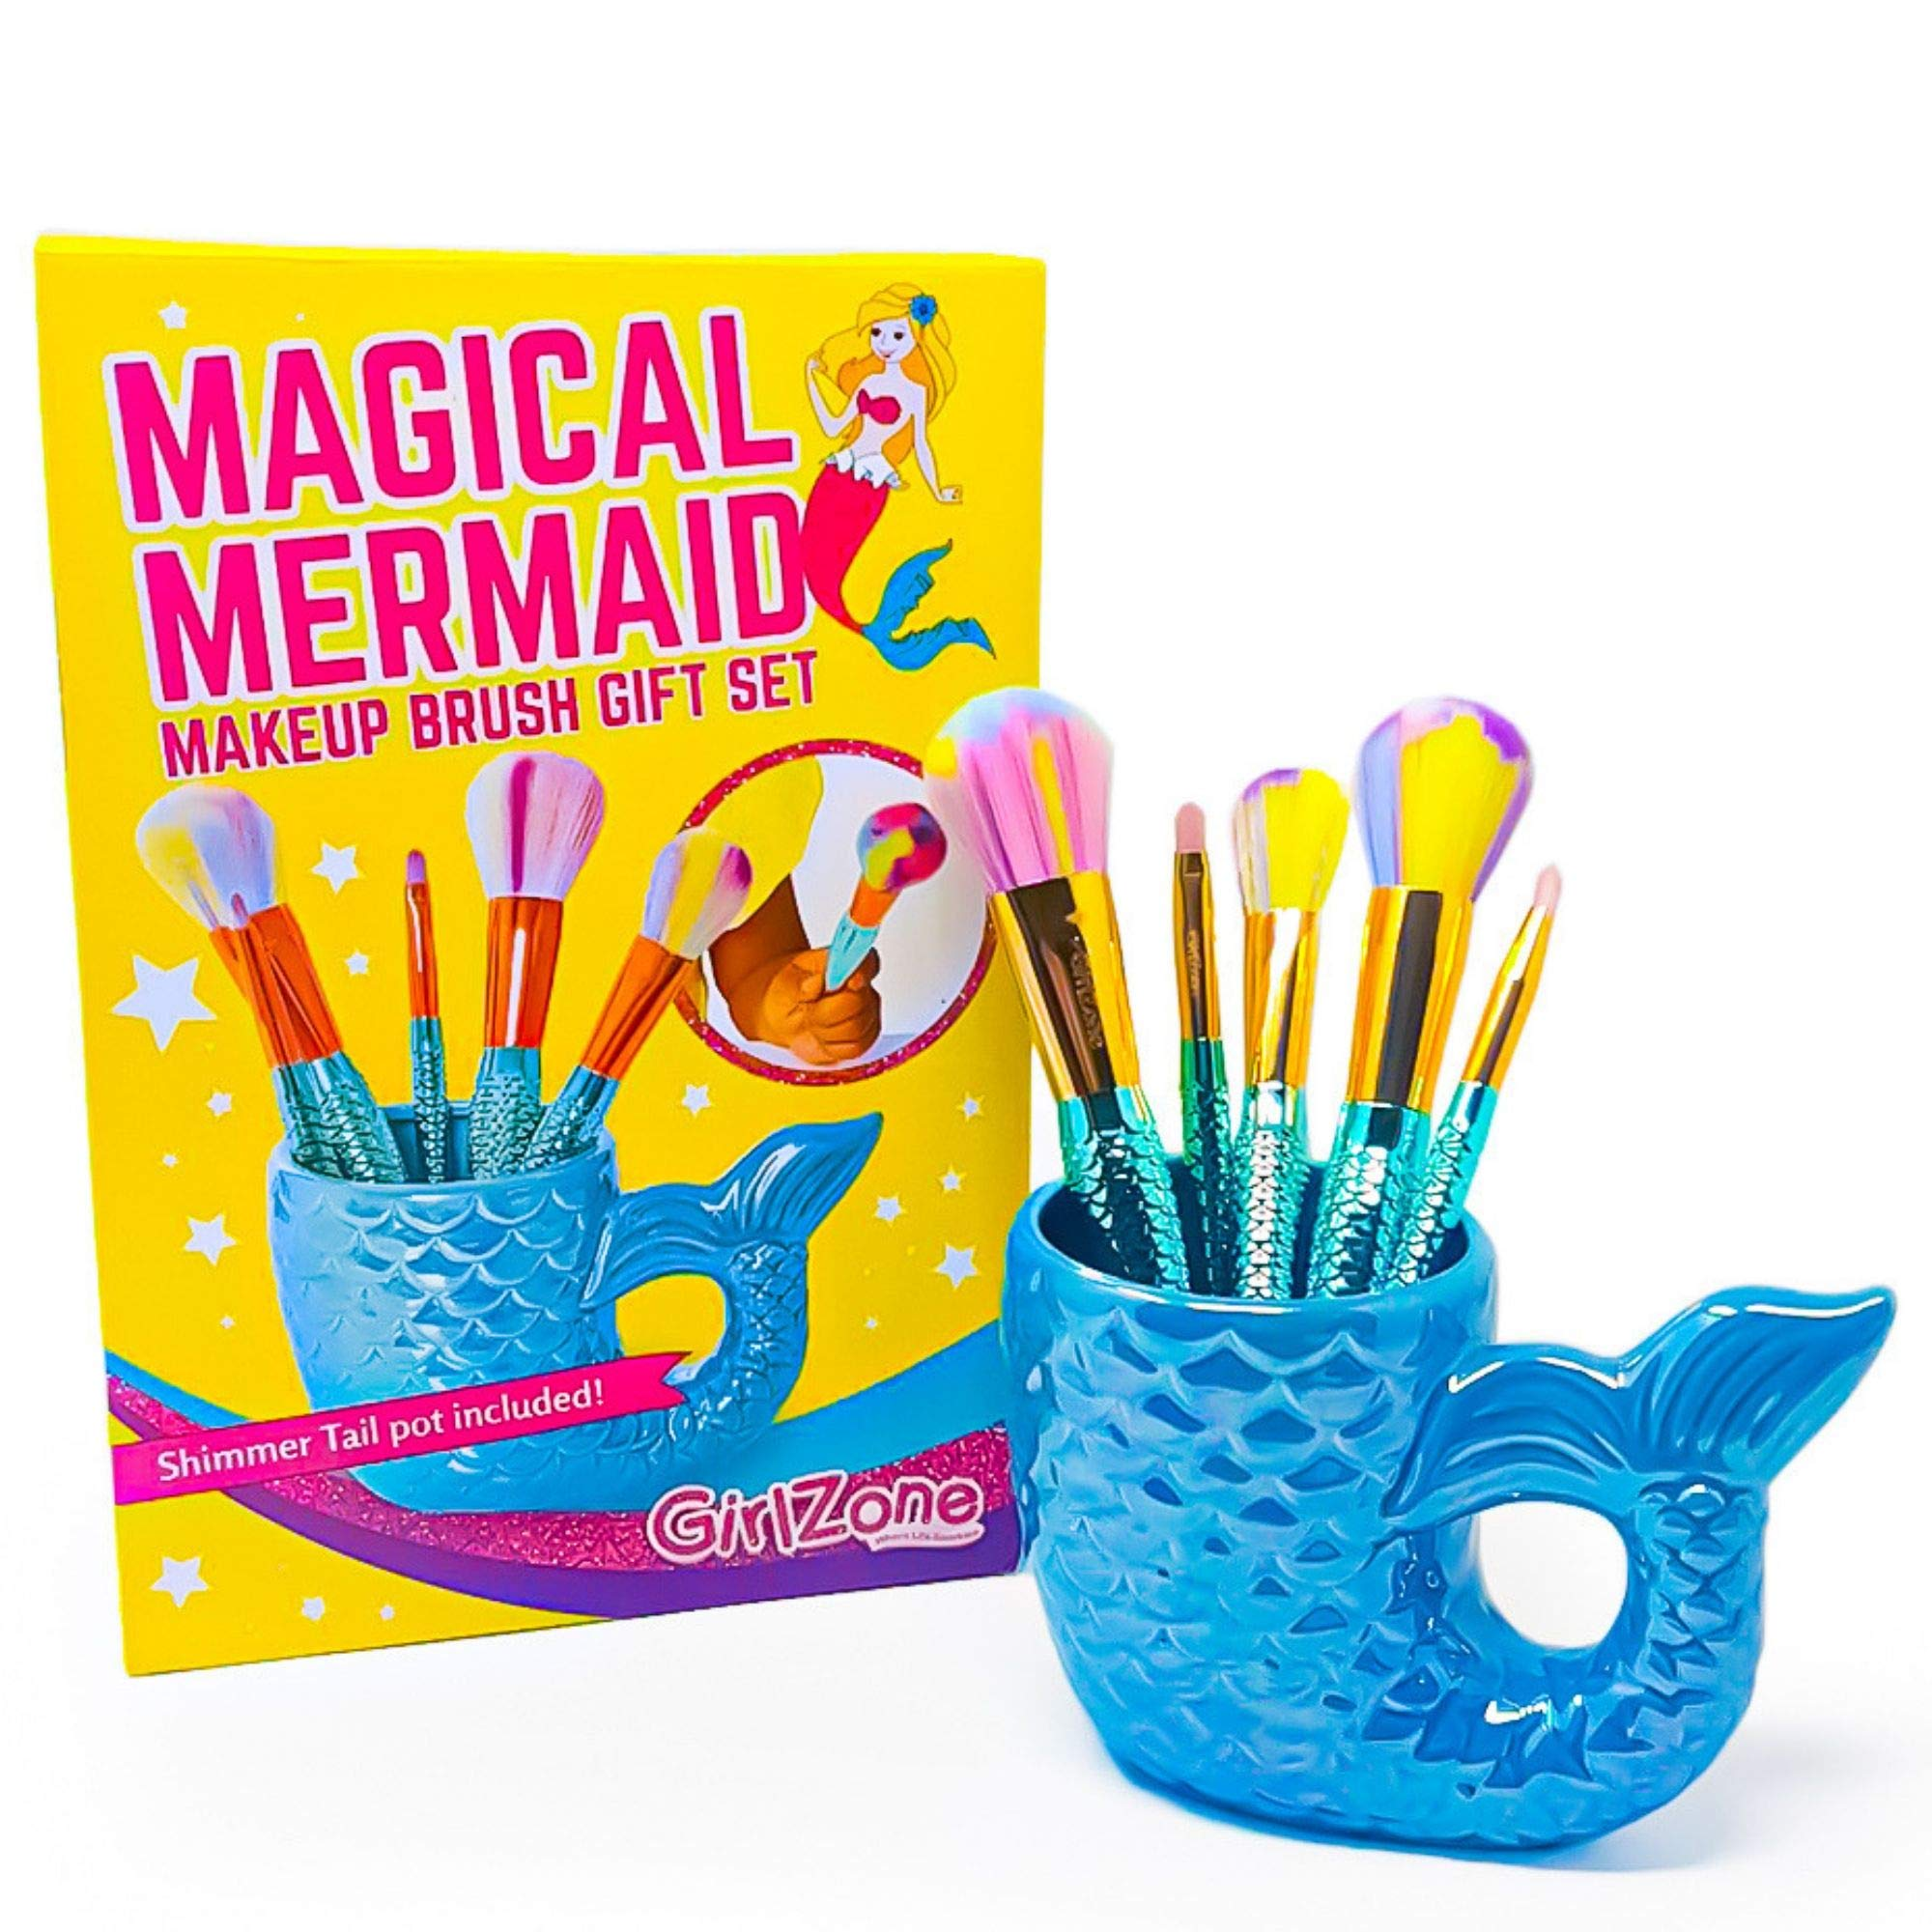 Birthday Gifts for Girls: Girls Makeup Kit Set, Fun Mermaid Makeup Brushes, Girls Gifts, Mermaid Gifts for Girls by GirlZone